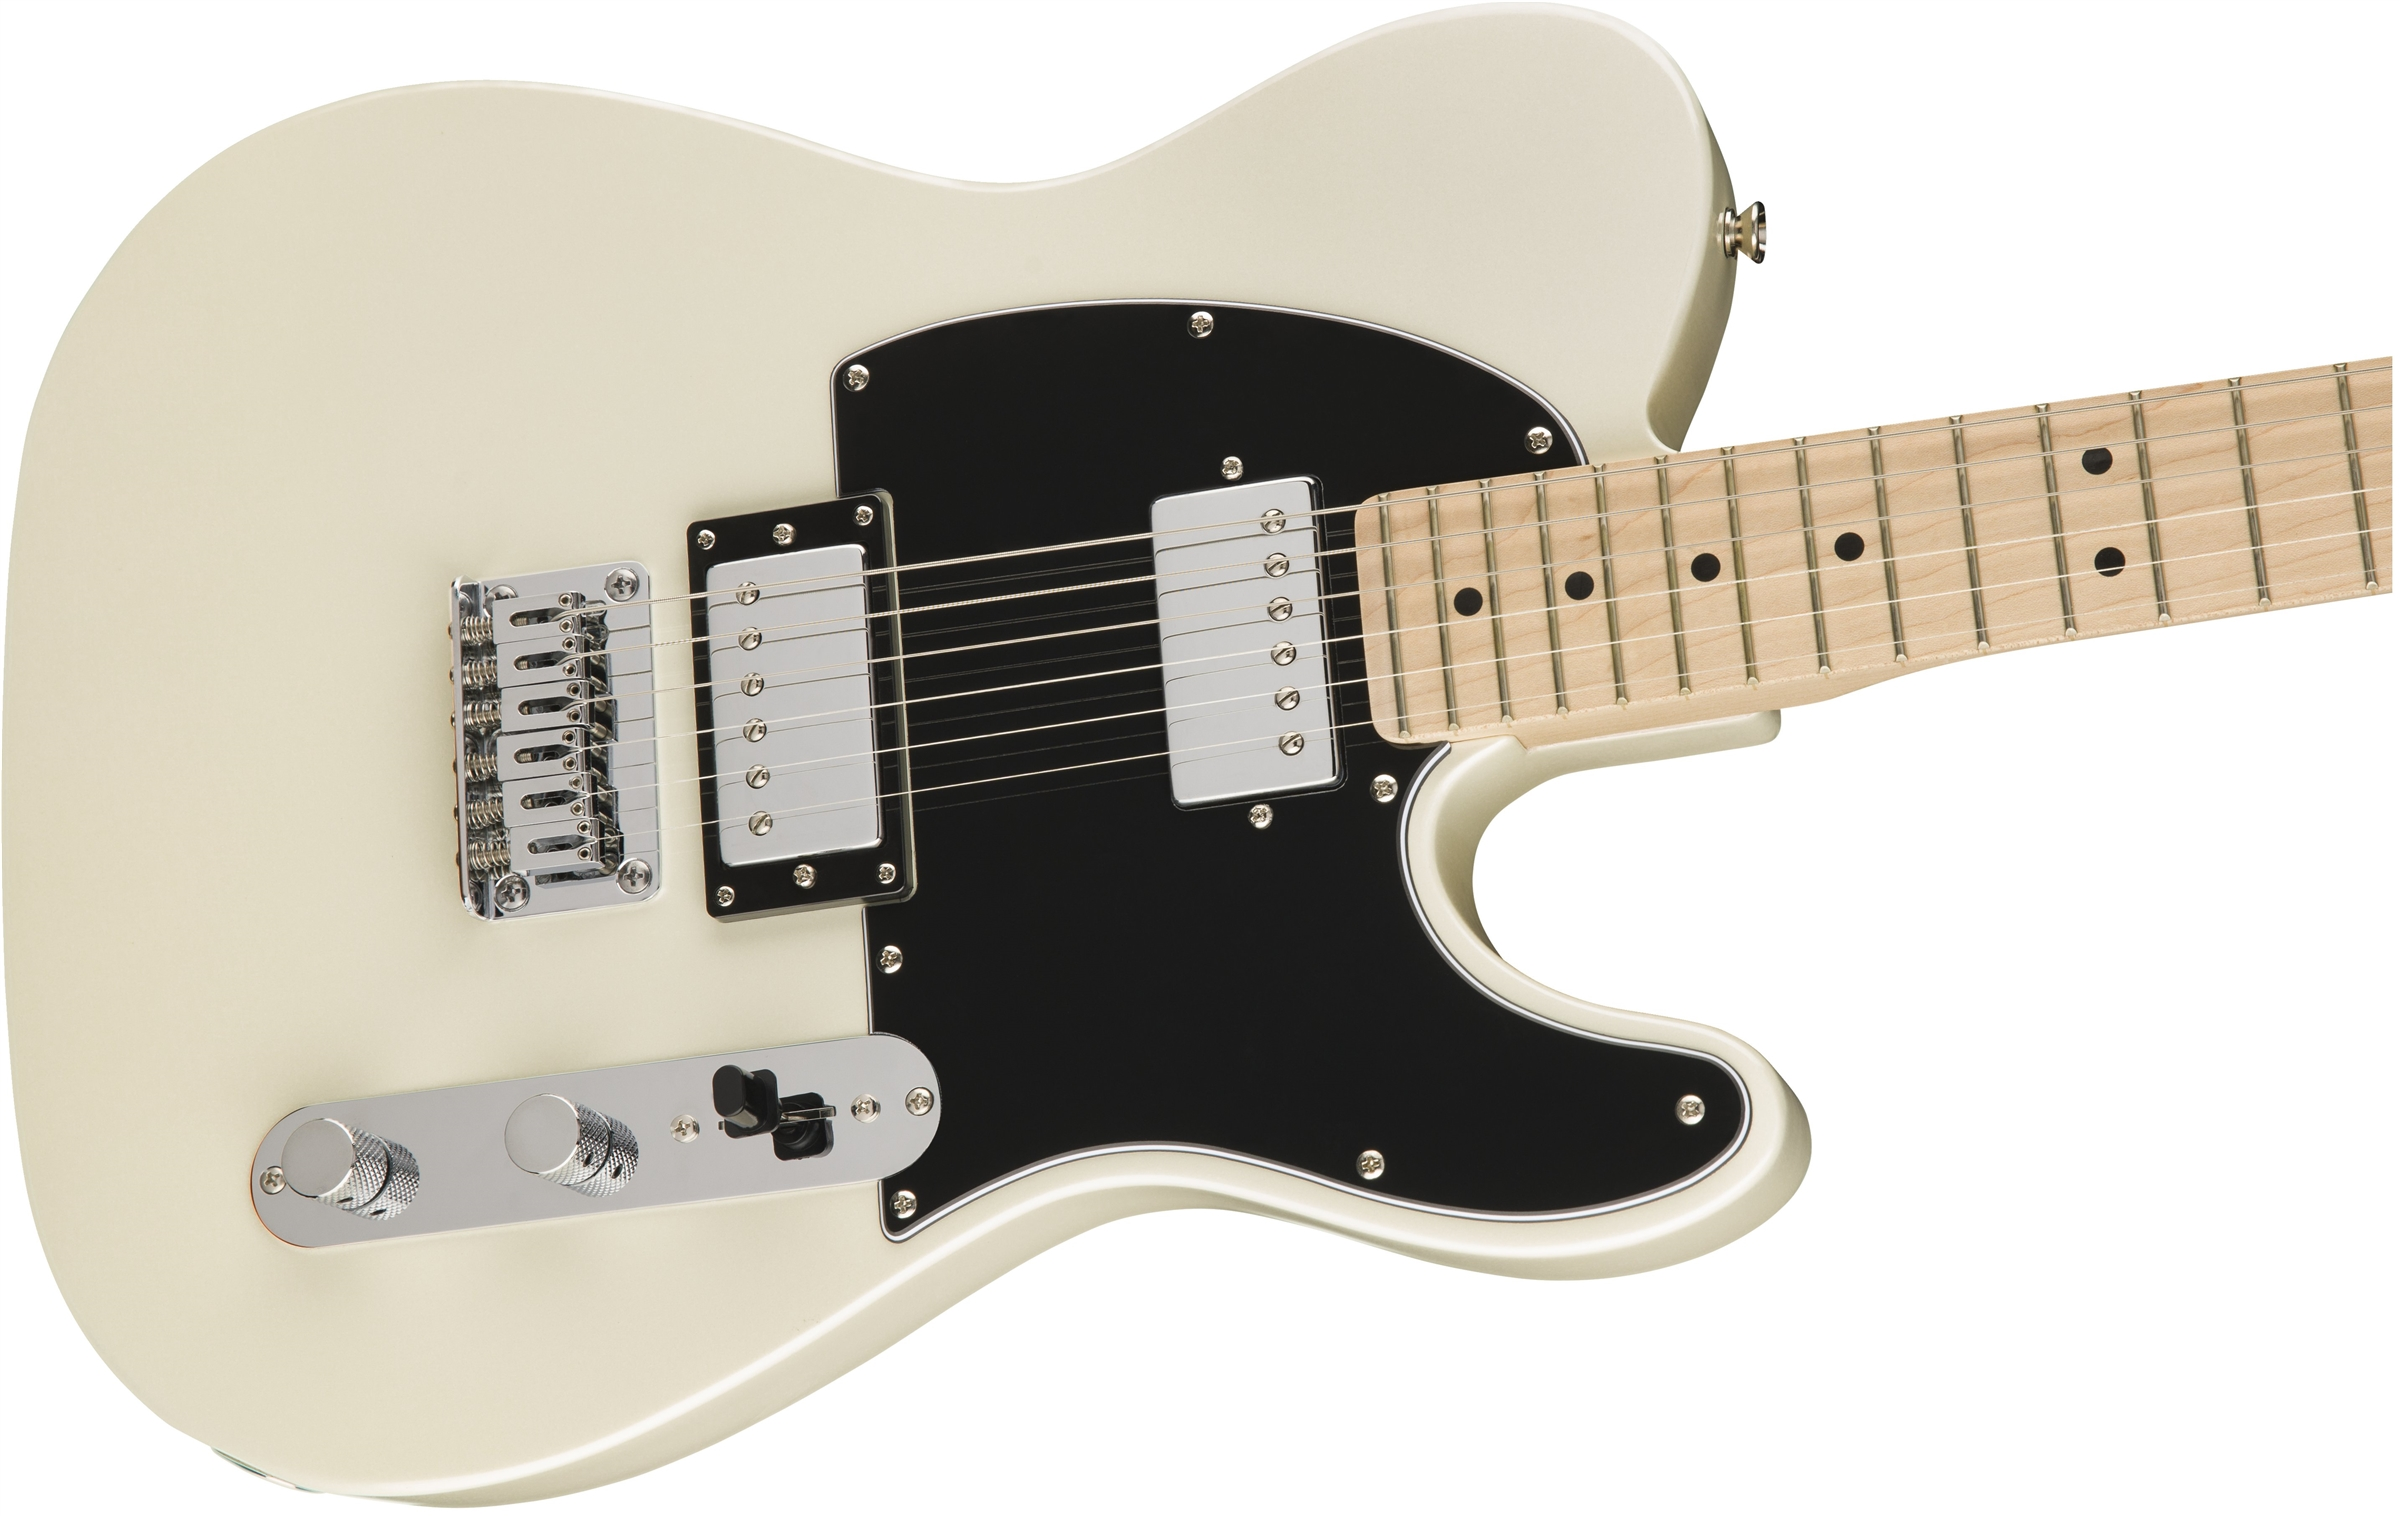 Fender Telecaster Hh >> Contemporary Telecaster Hh Squier Electric Guitars